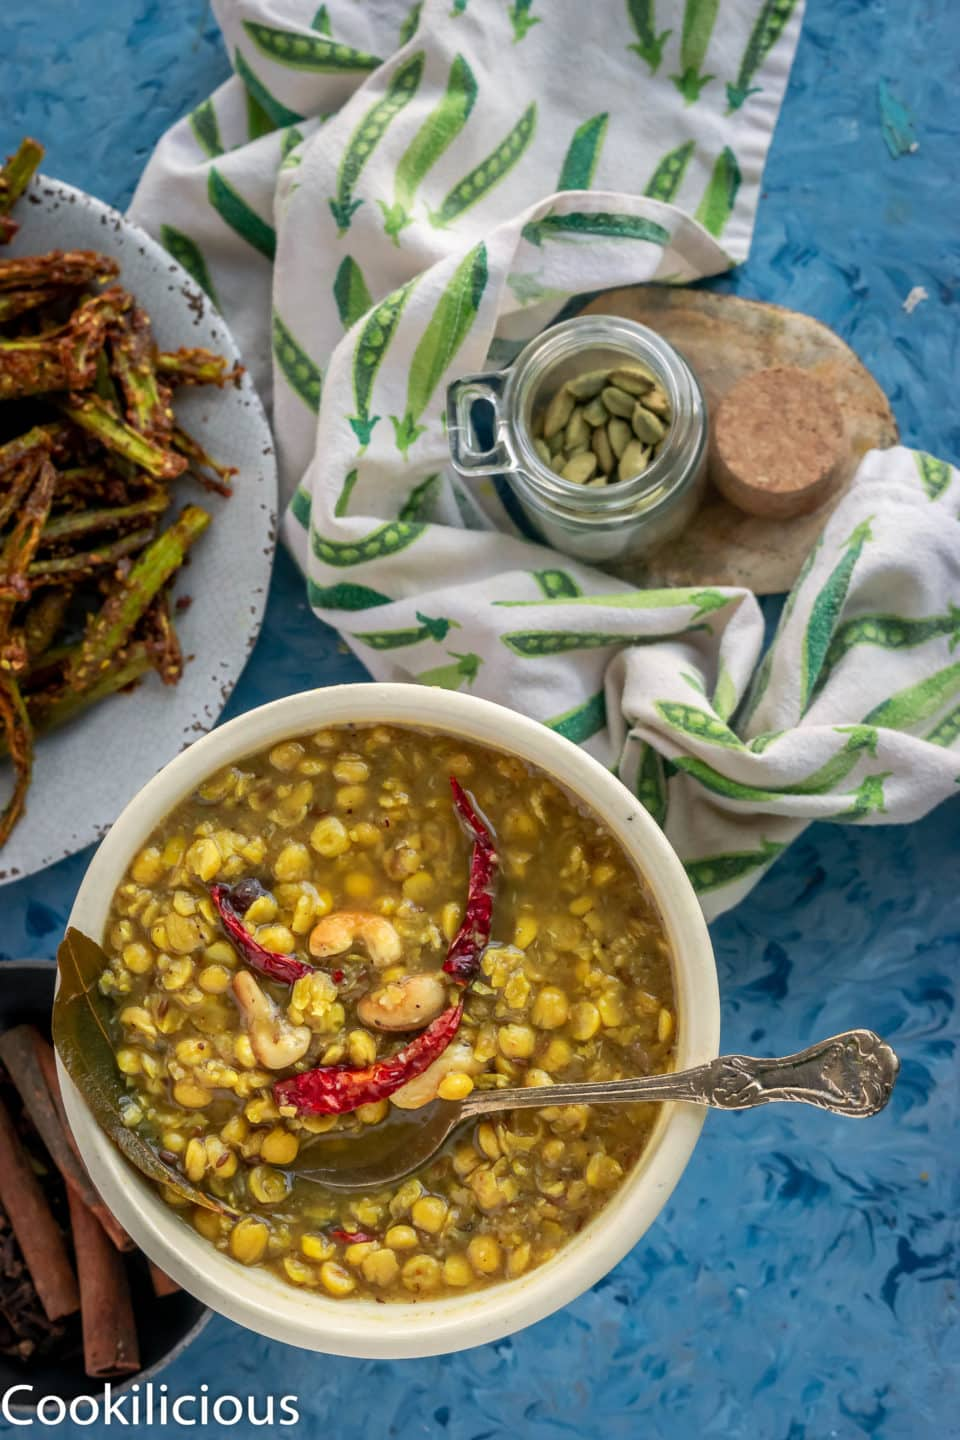 a bowl of Bengali Style Cholar Dal With Chana Dal with a kitchen towel and a bottle of cardamom next to it